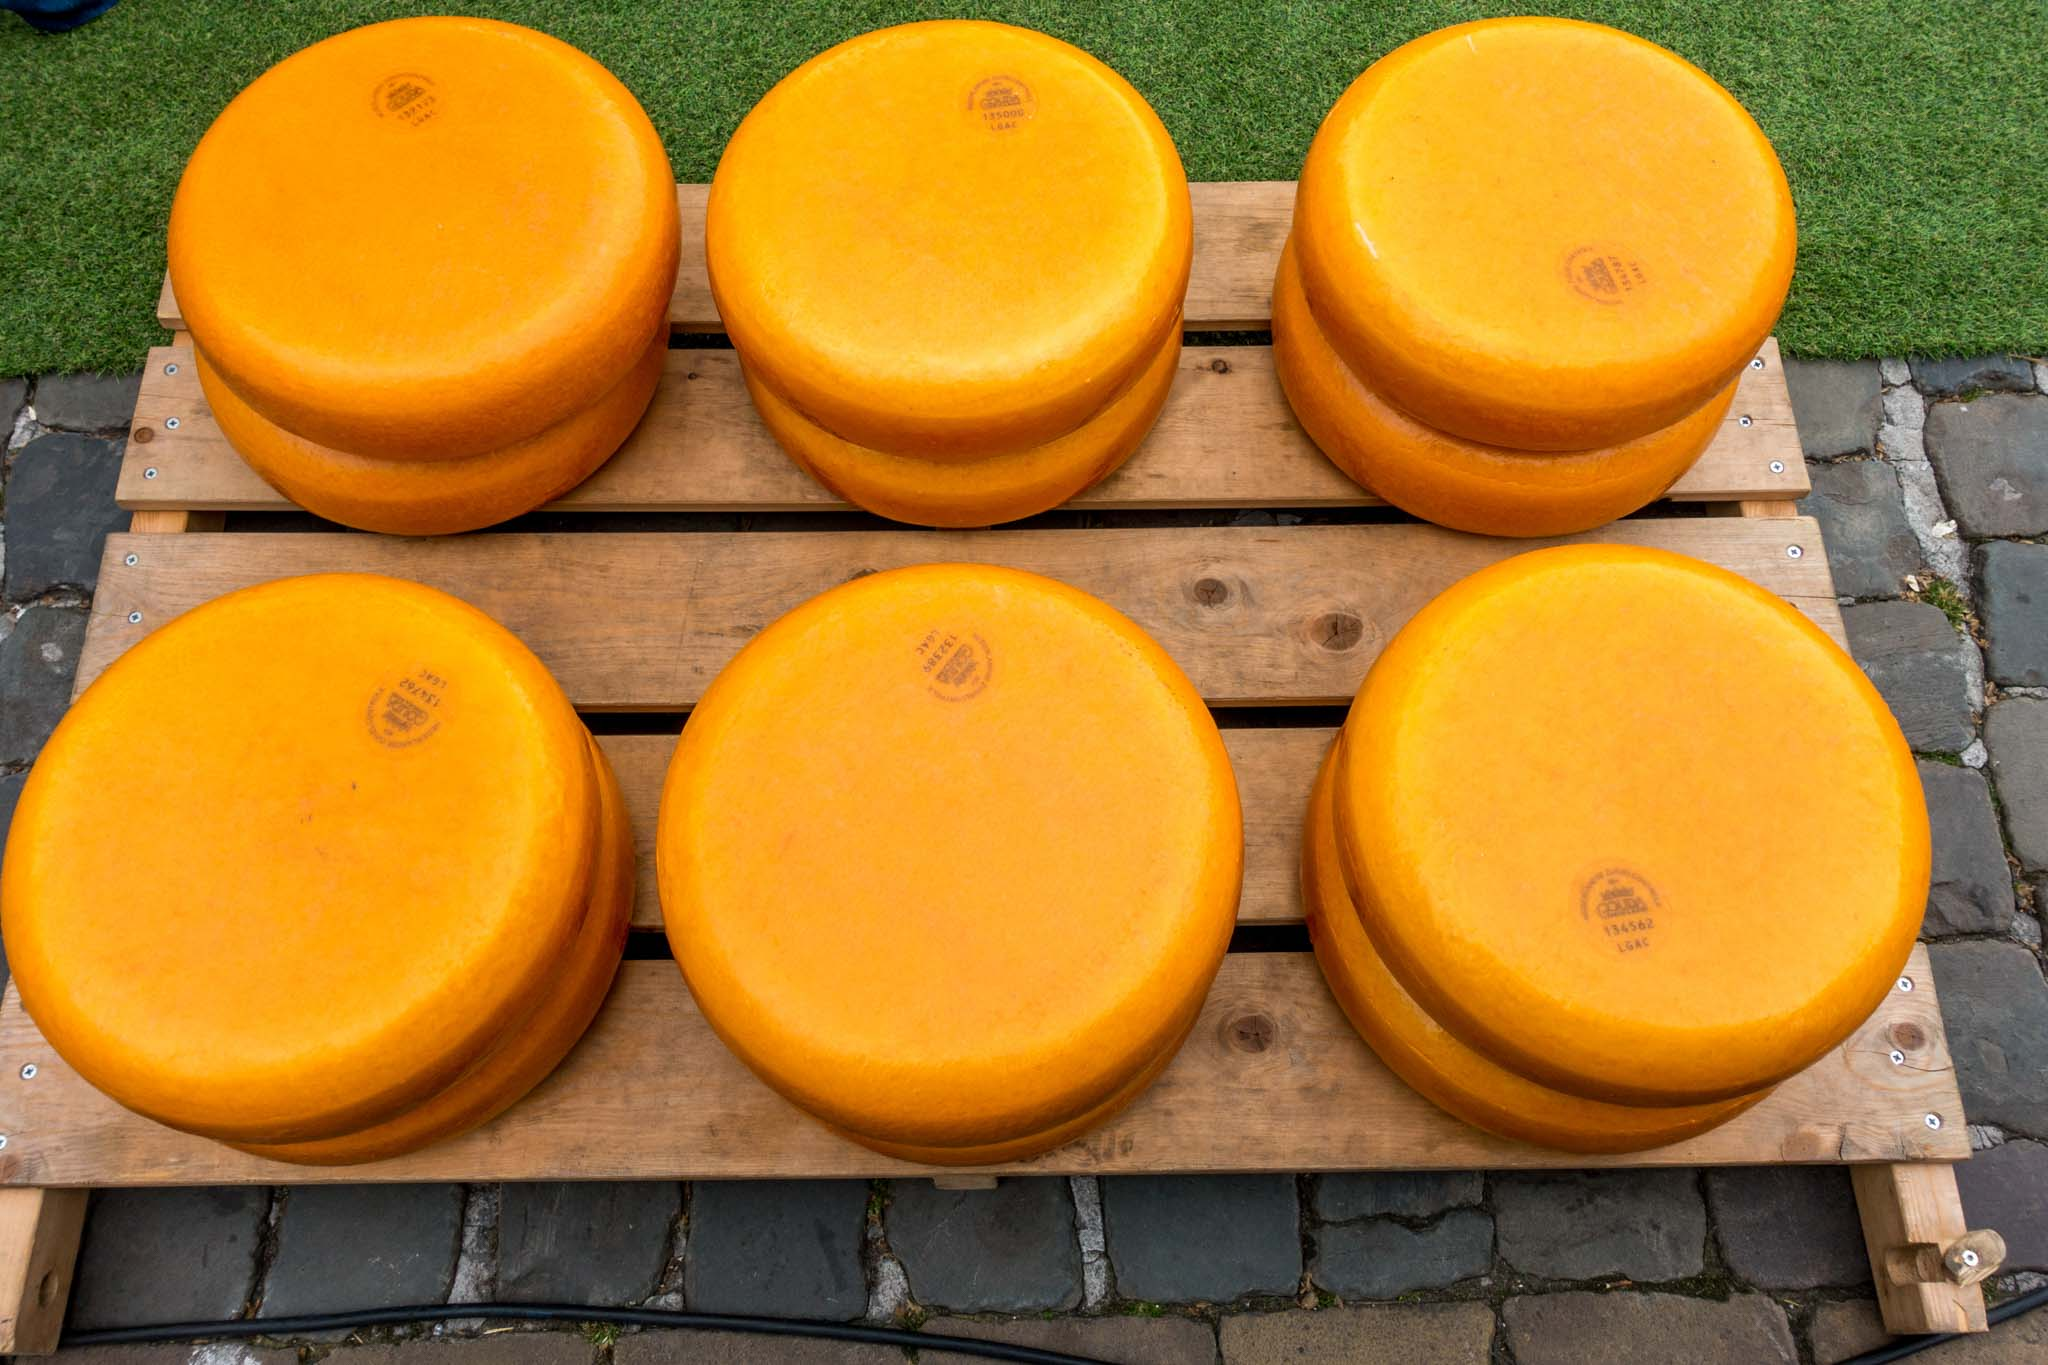 There are lots of aged Gouda cheese wheels at the weekly cheese market